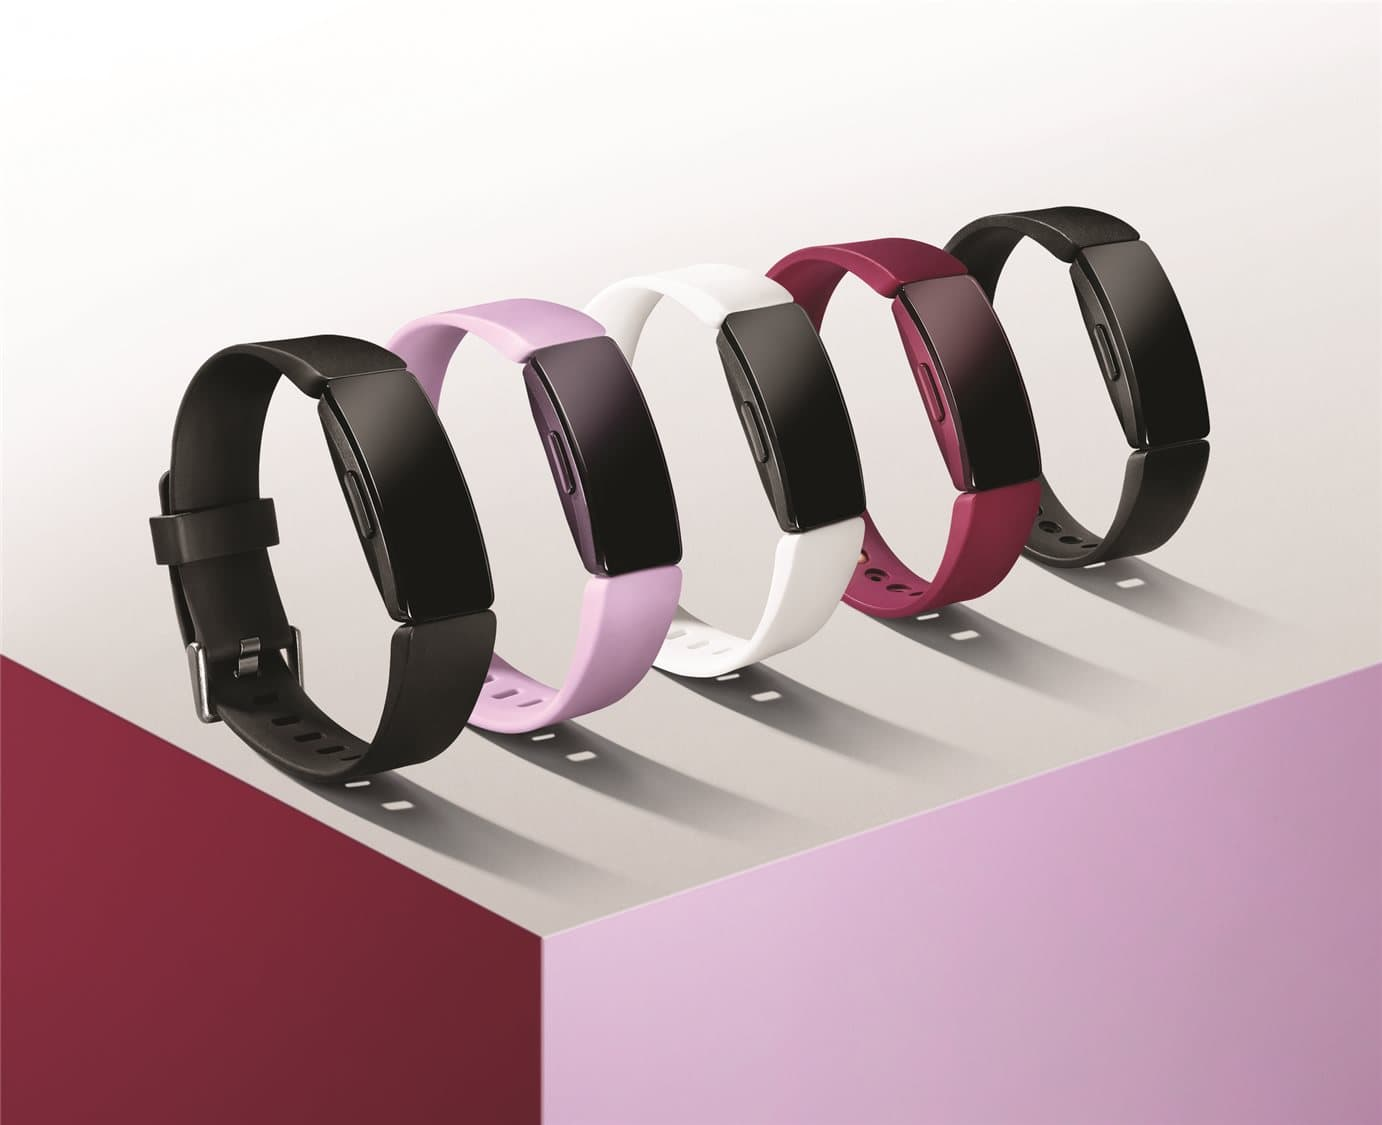 Fitbit introduces new Inspire ($70) and Inspire HR ($100), Versa Lite ($160), and Ace 2 for kids ($70)